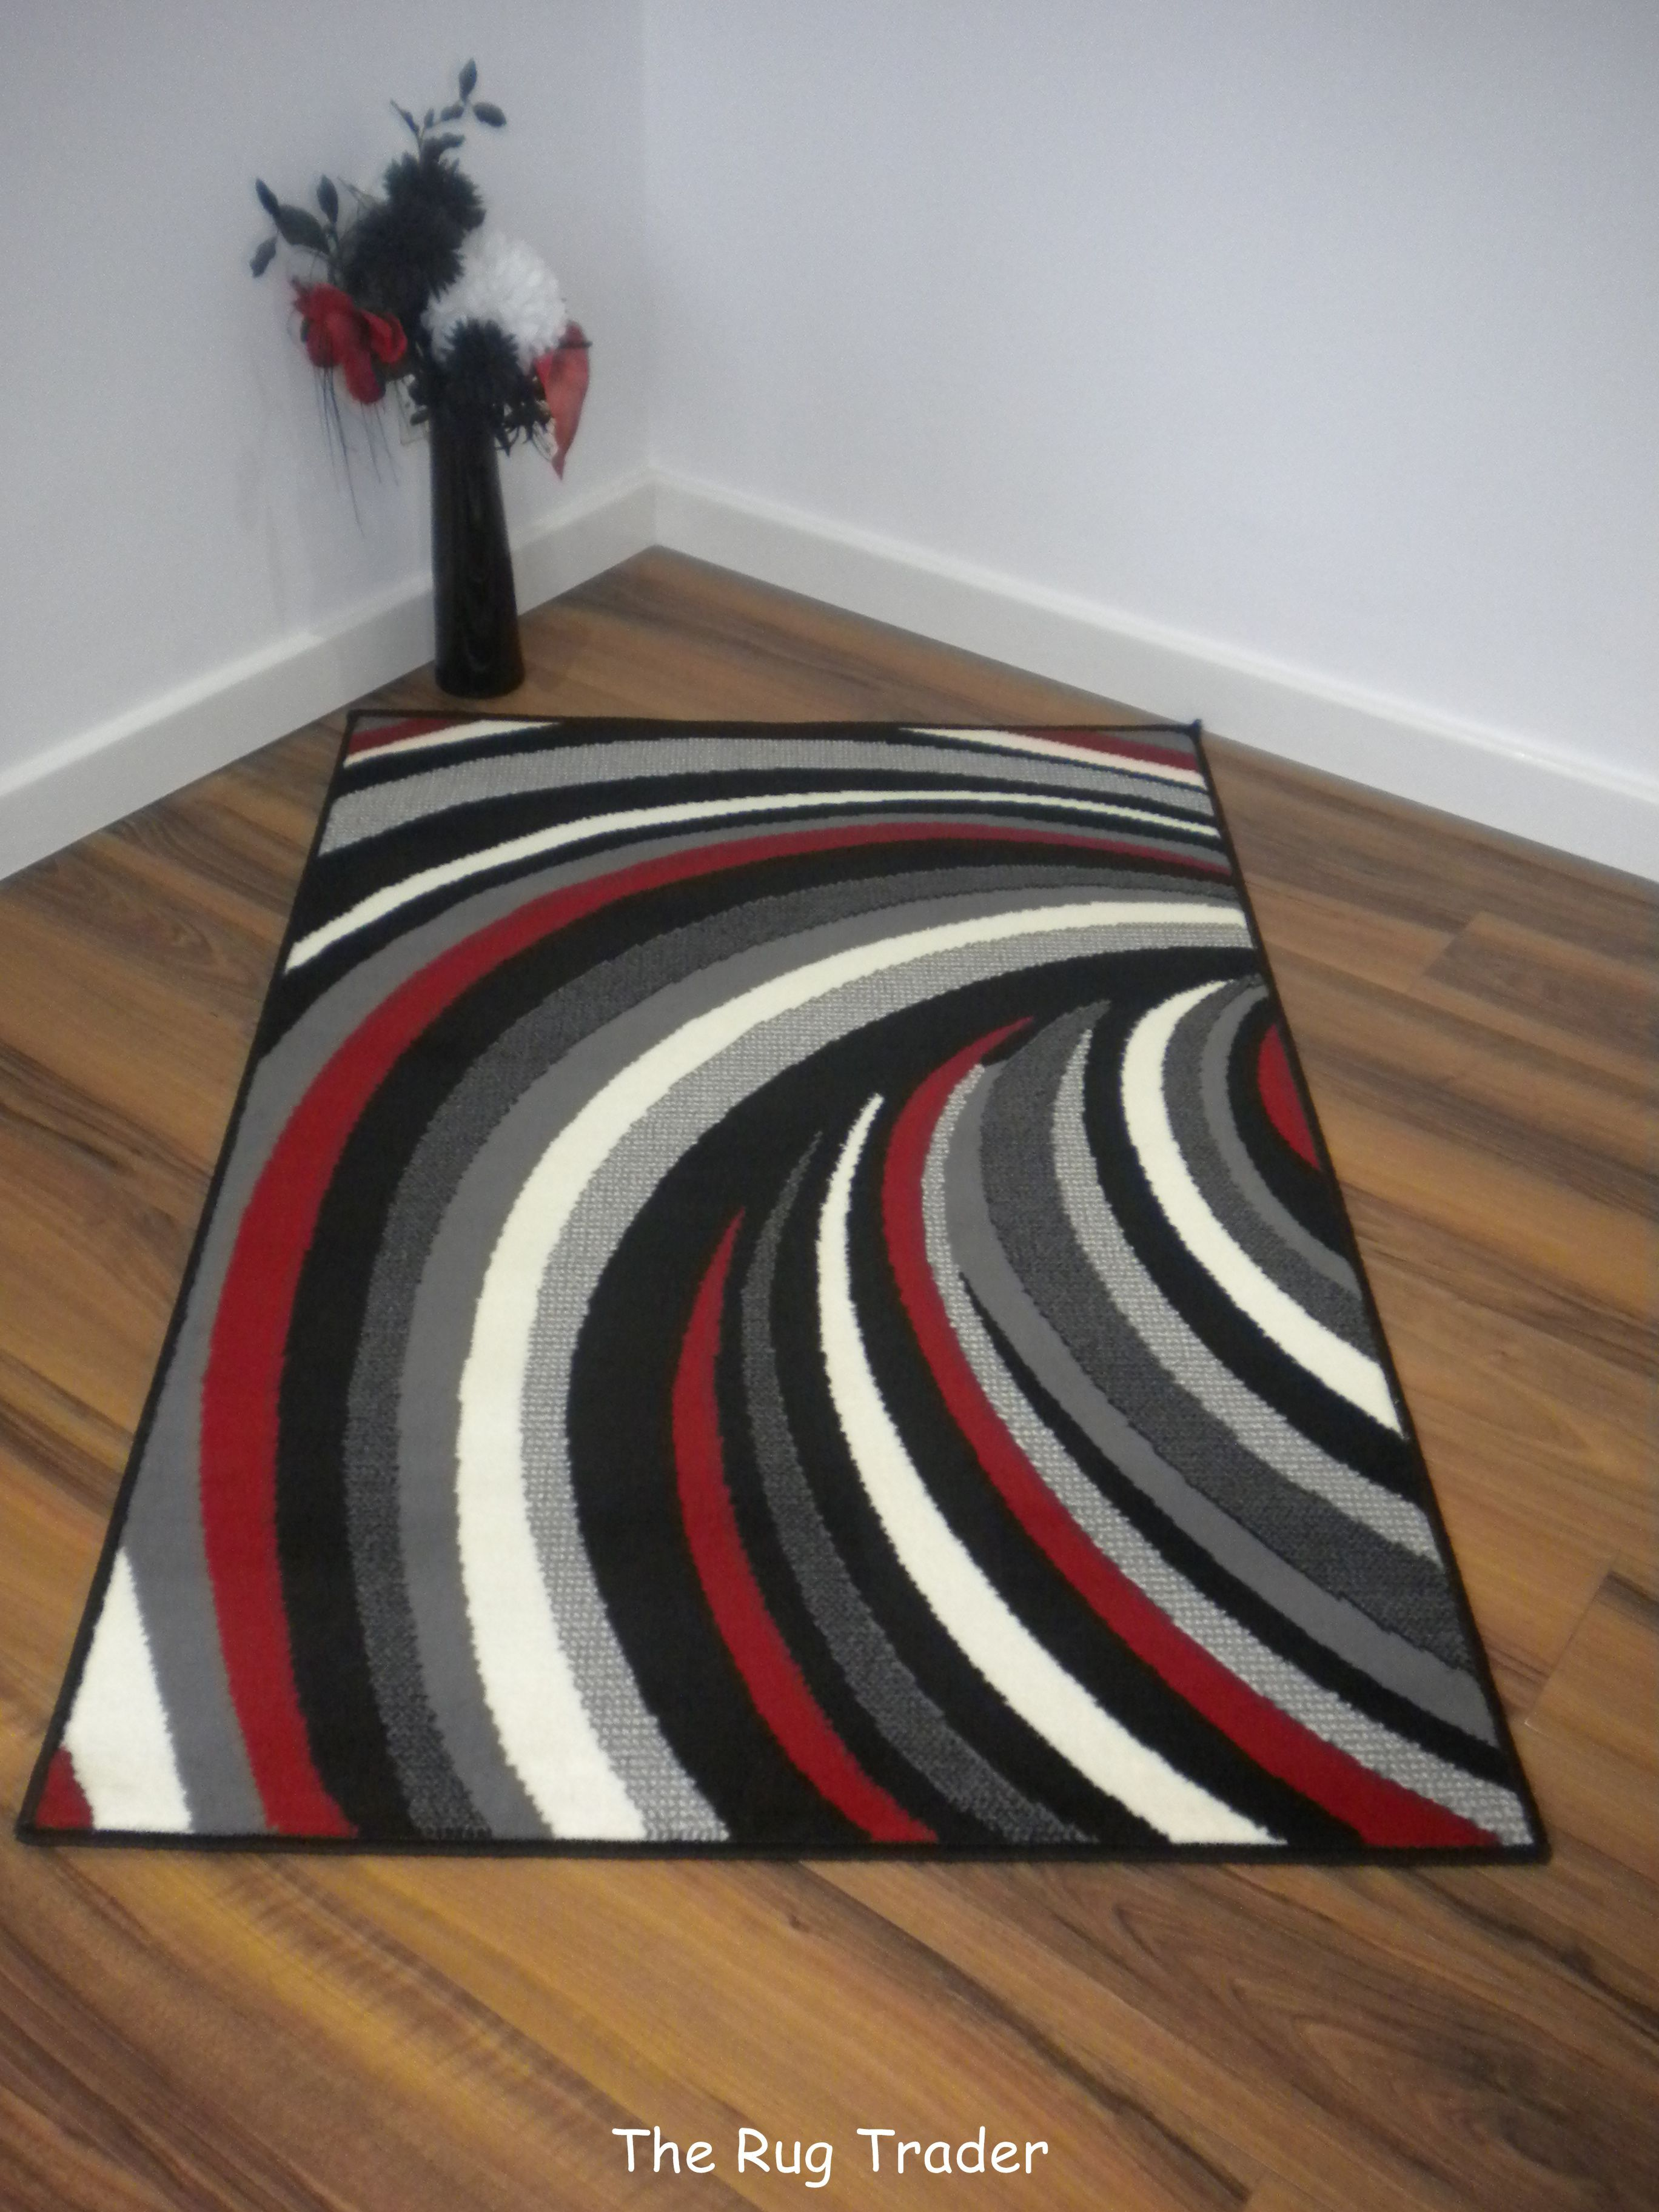 aqua and red rugs helix striped modern poly black red grey rug 100cm x 150cm helblk. Black Bedroom Furniture Sets. Home Design Ideas